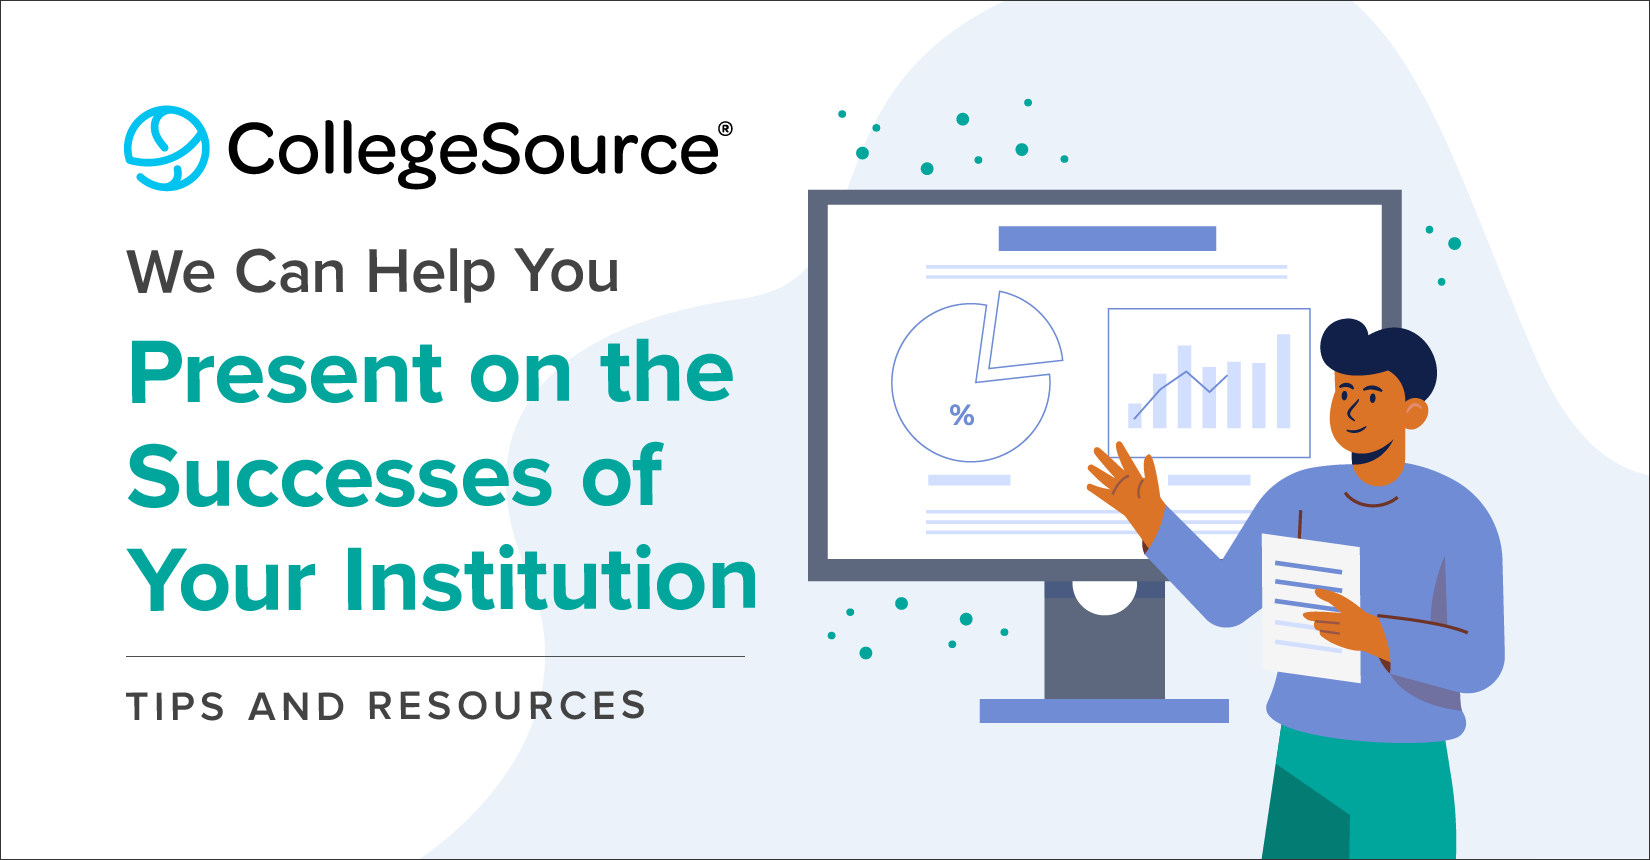 Man by computer presenting - CollegeSource can help you present on successes of your institution